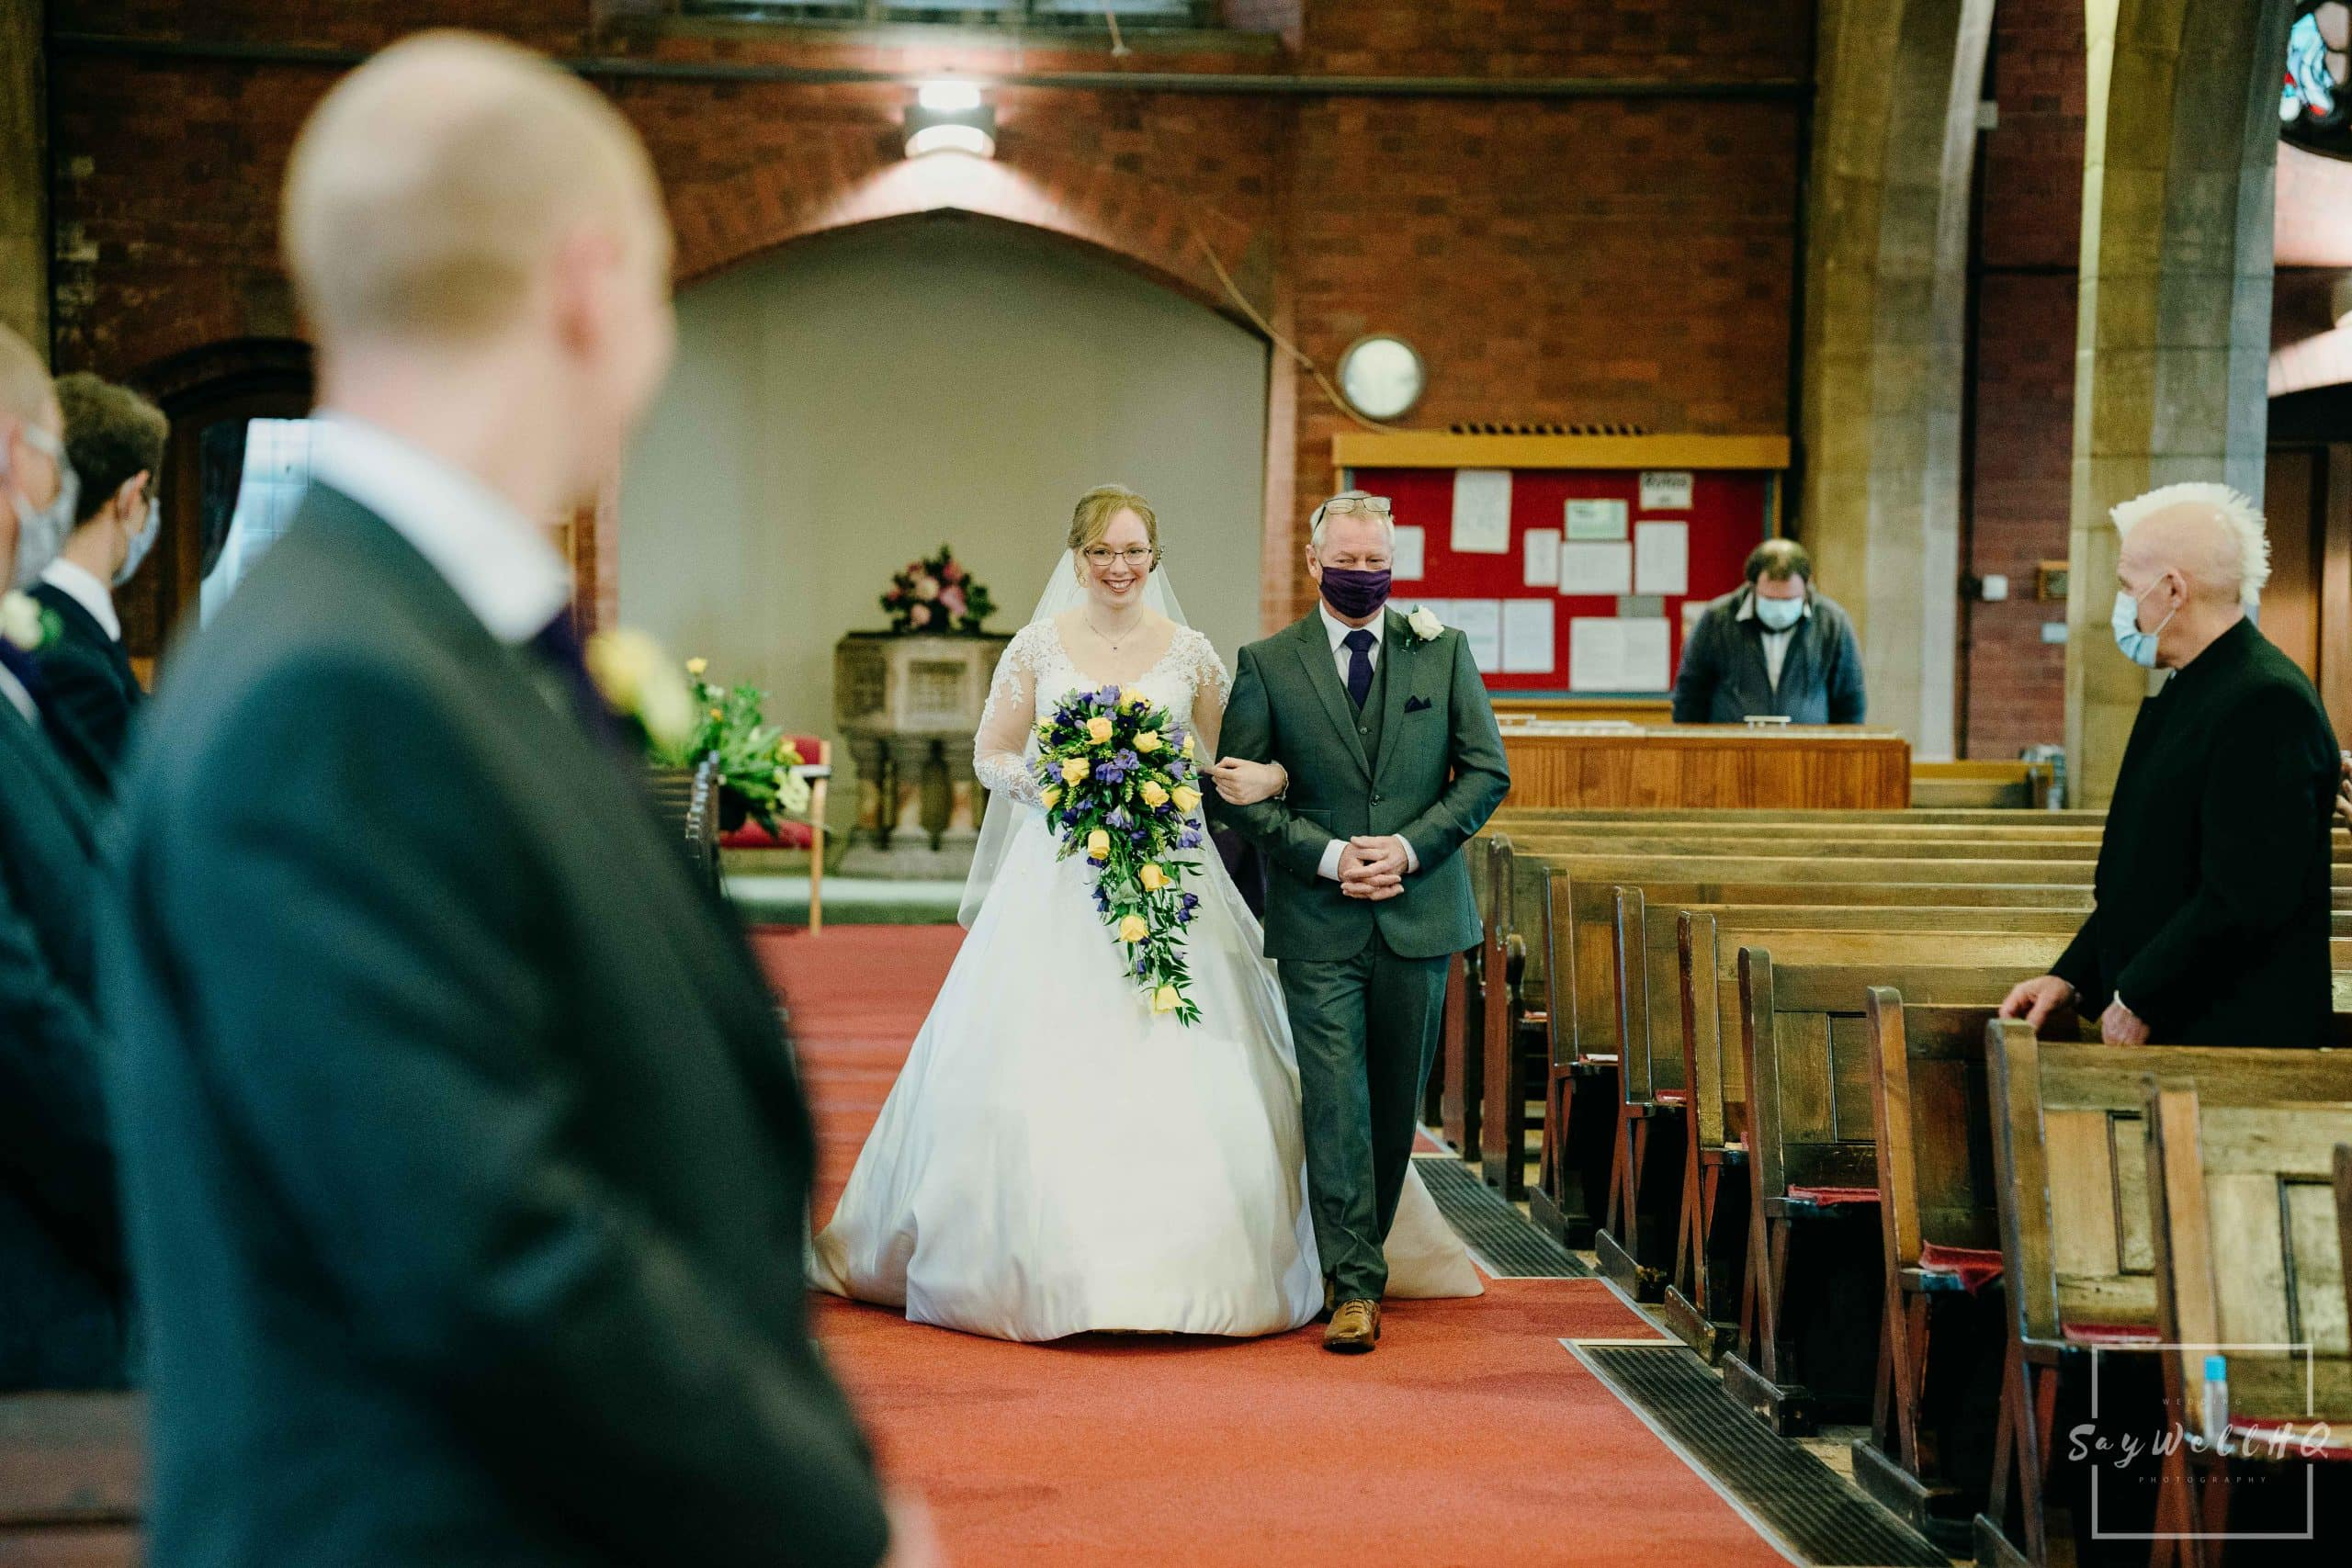 Covid Wedding Photography - bride and her dad walk down the aisle - wedding photography by Andy Saywell of SaywellHQ